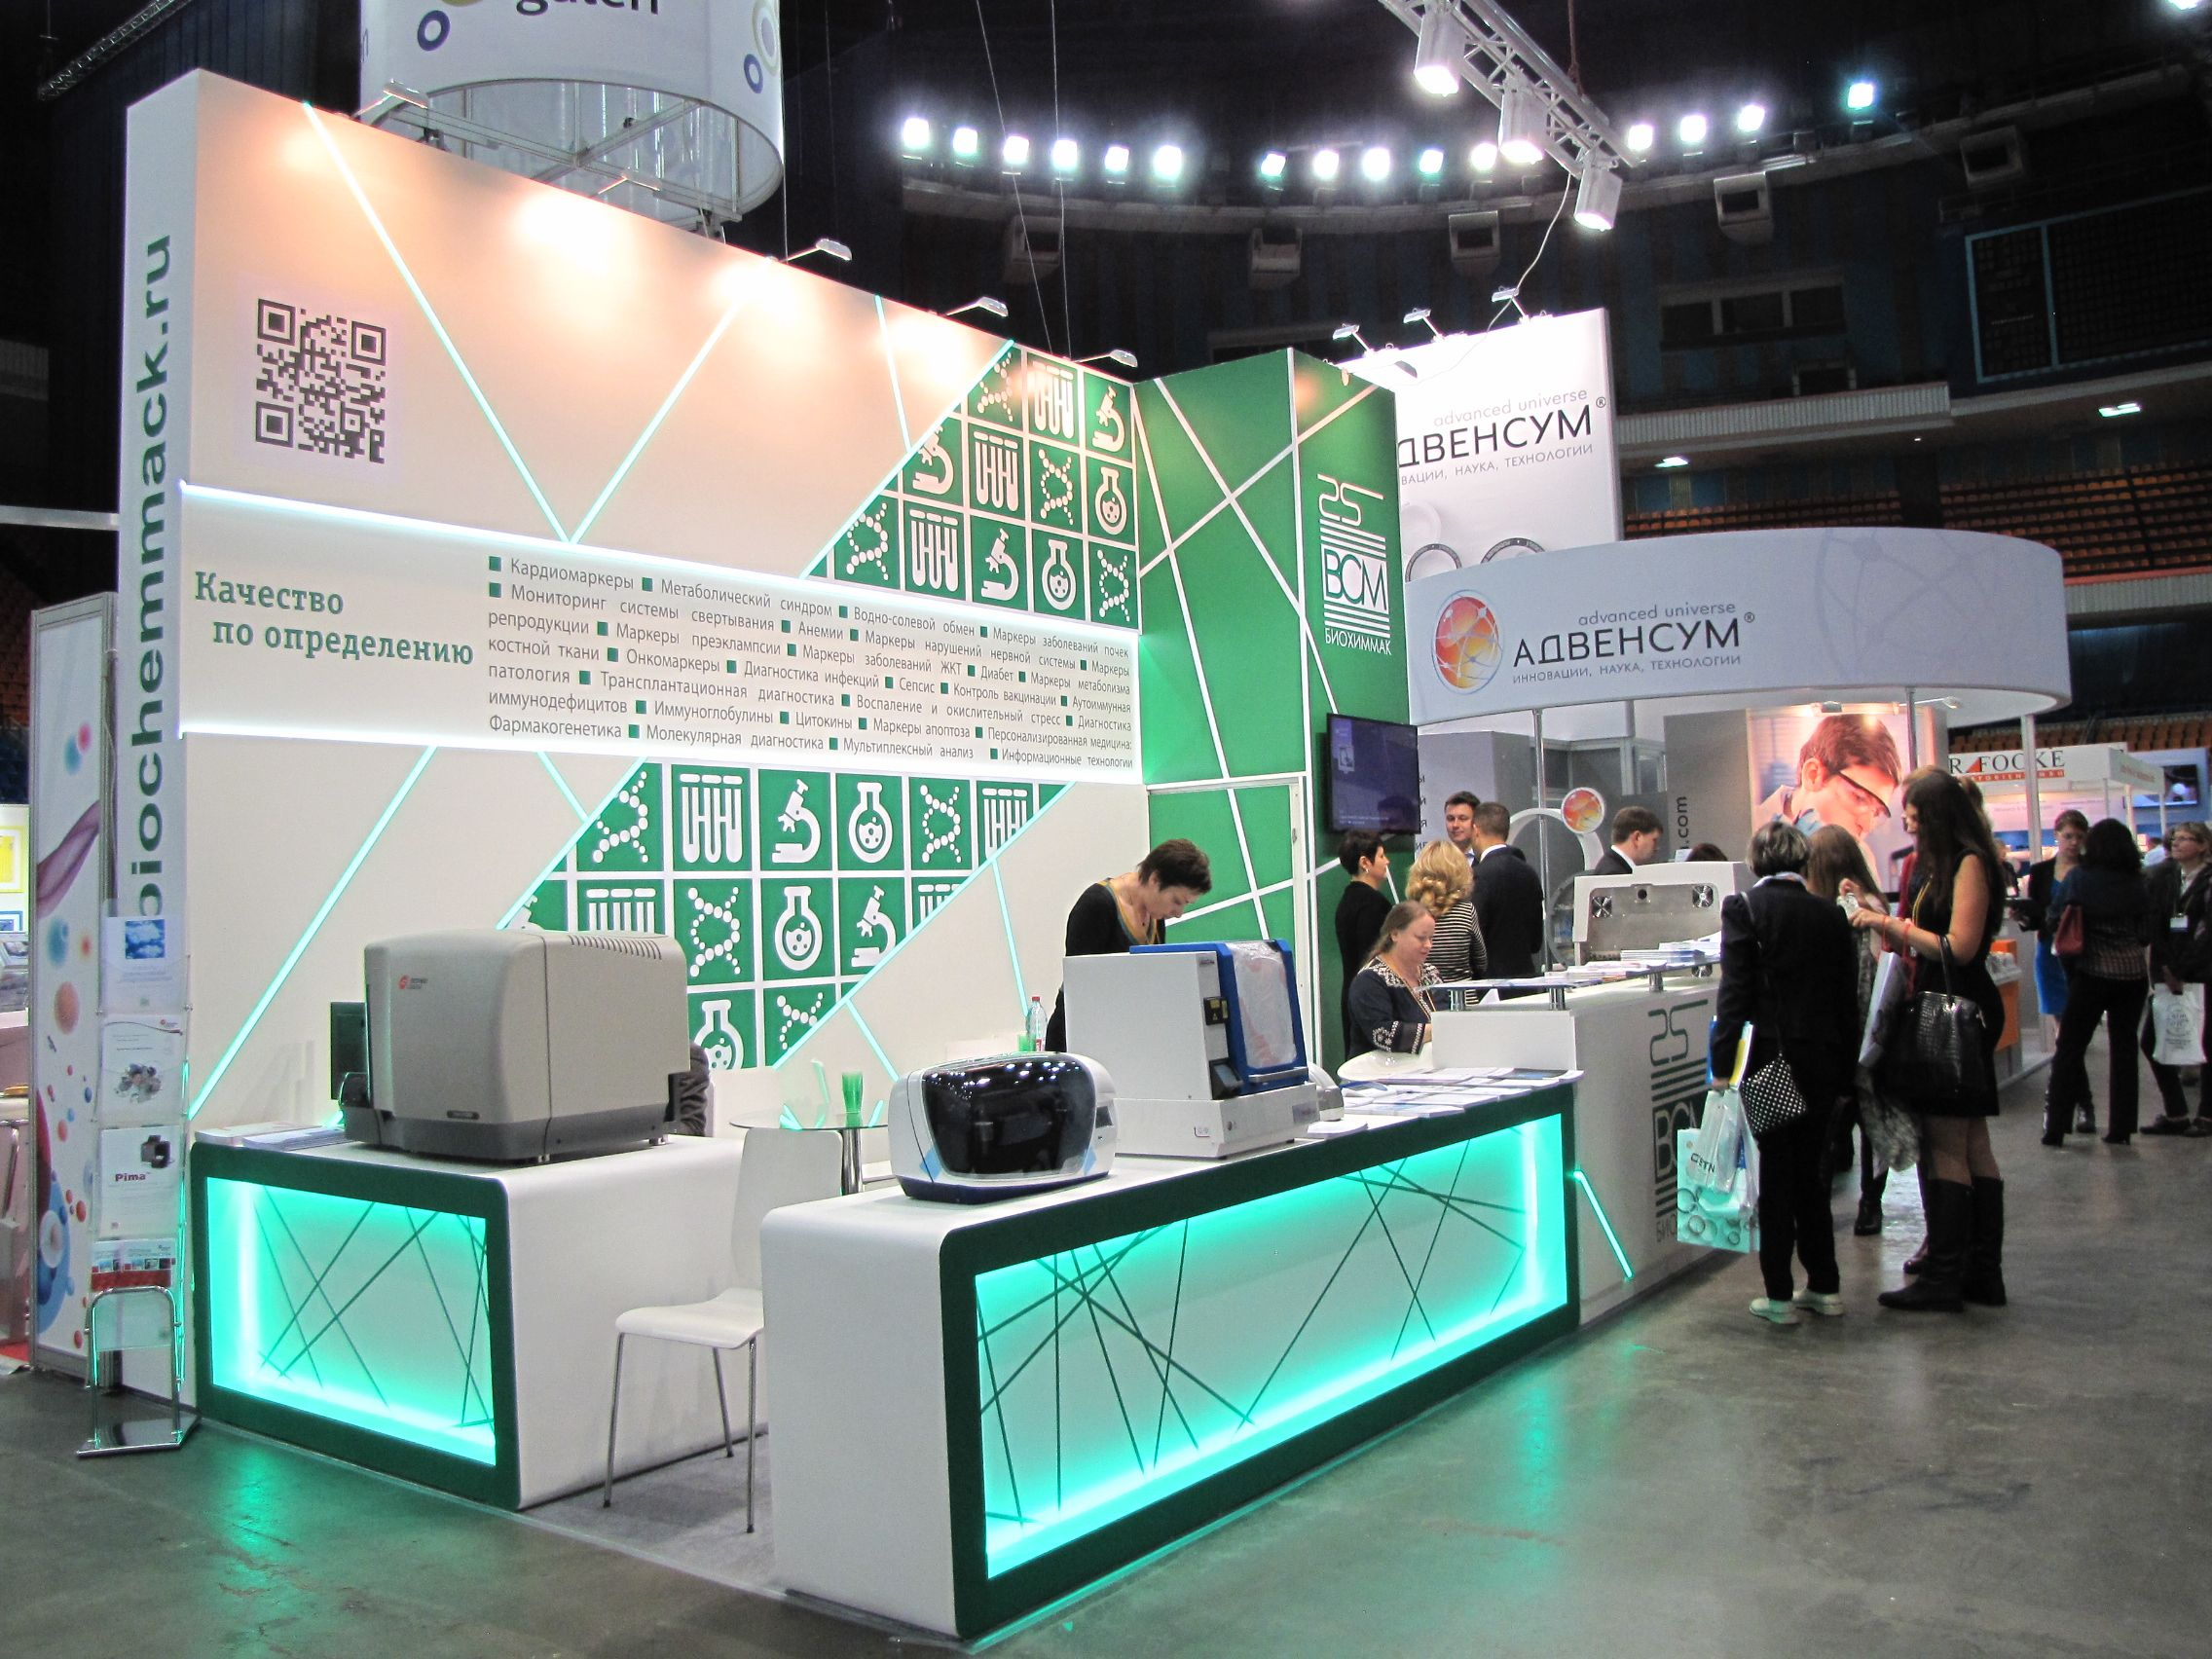 Moscow interlabdiagnostika2014 exhibition pinterest for Arquitectura y diseno stands 8 pdf